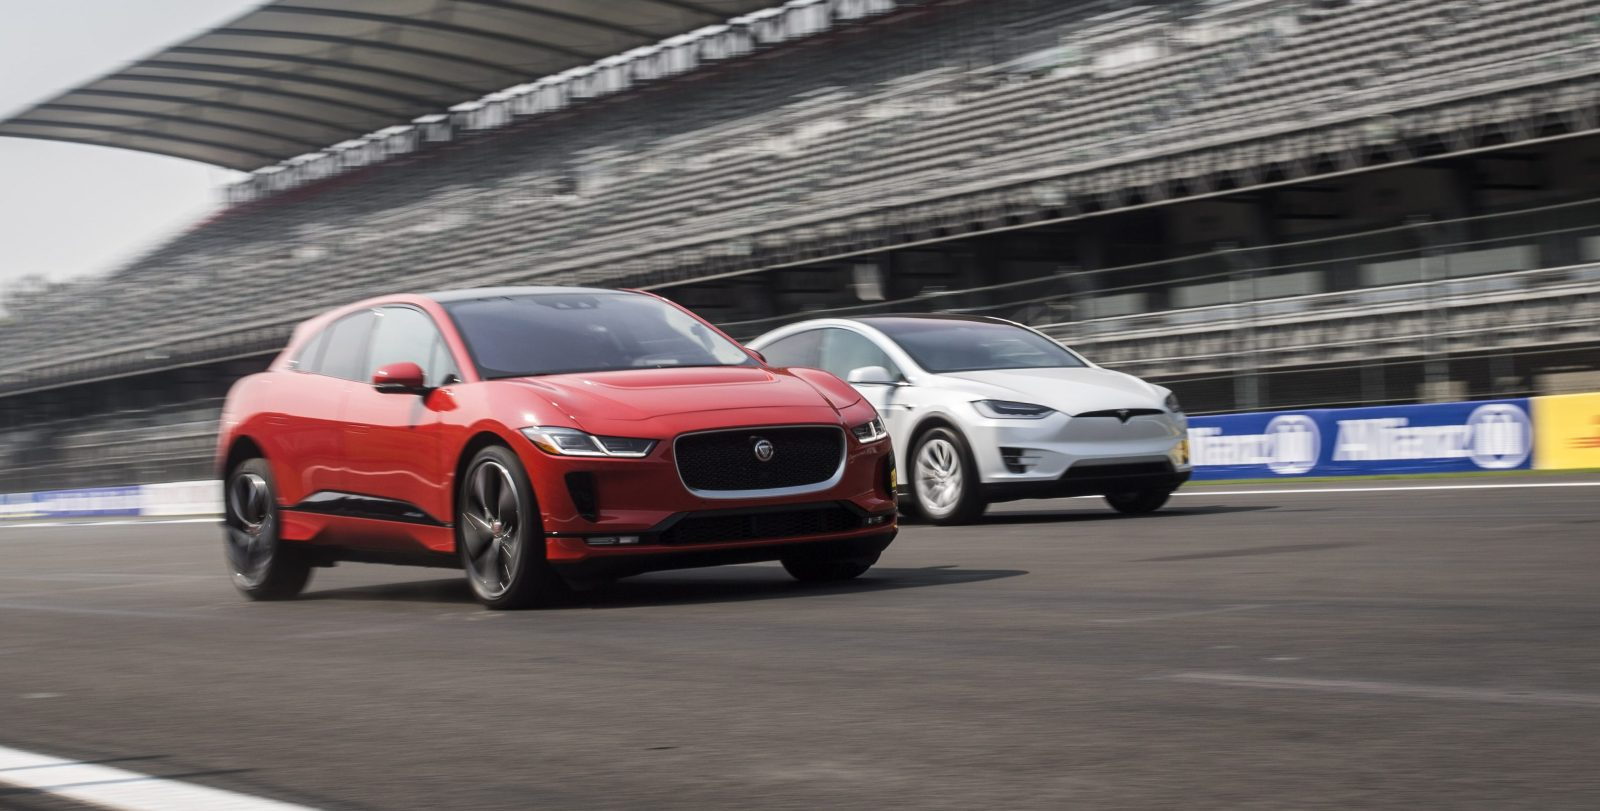 Jaguar Compares New I Pace With Tesla Model X In Interesting Drag Race Video